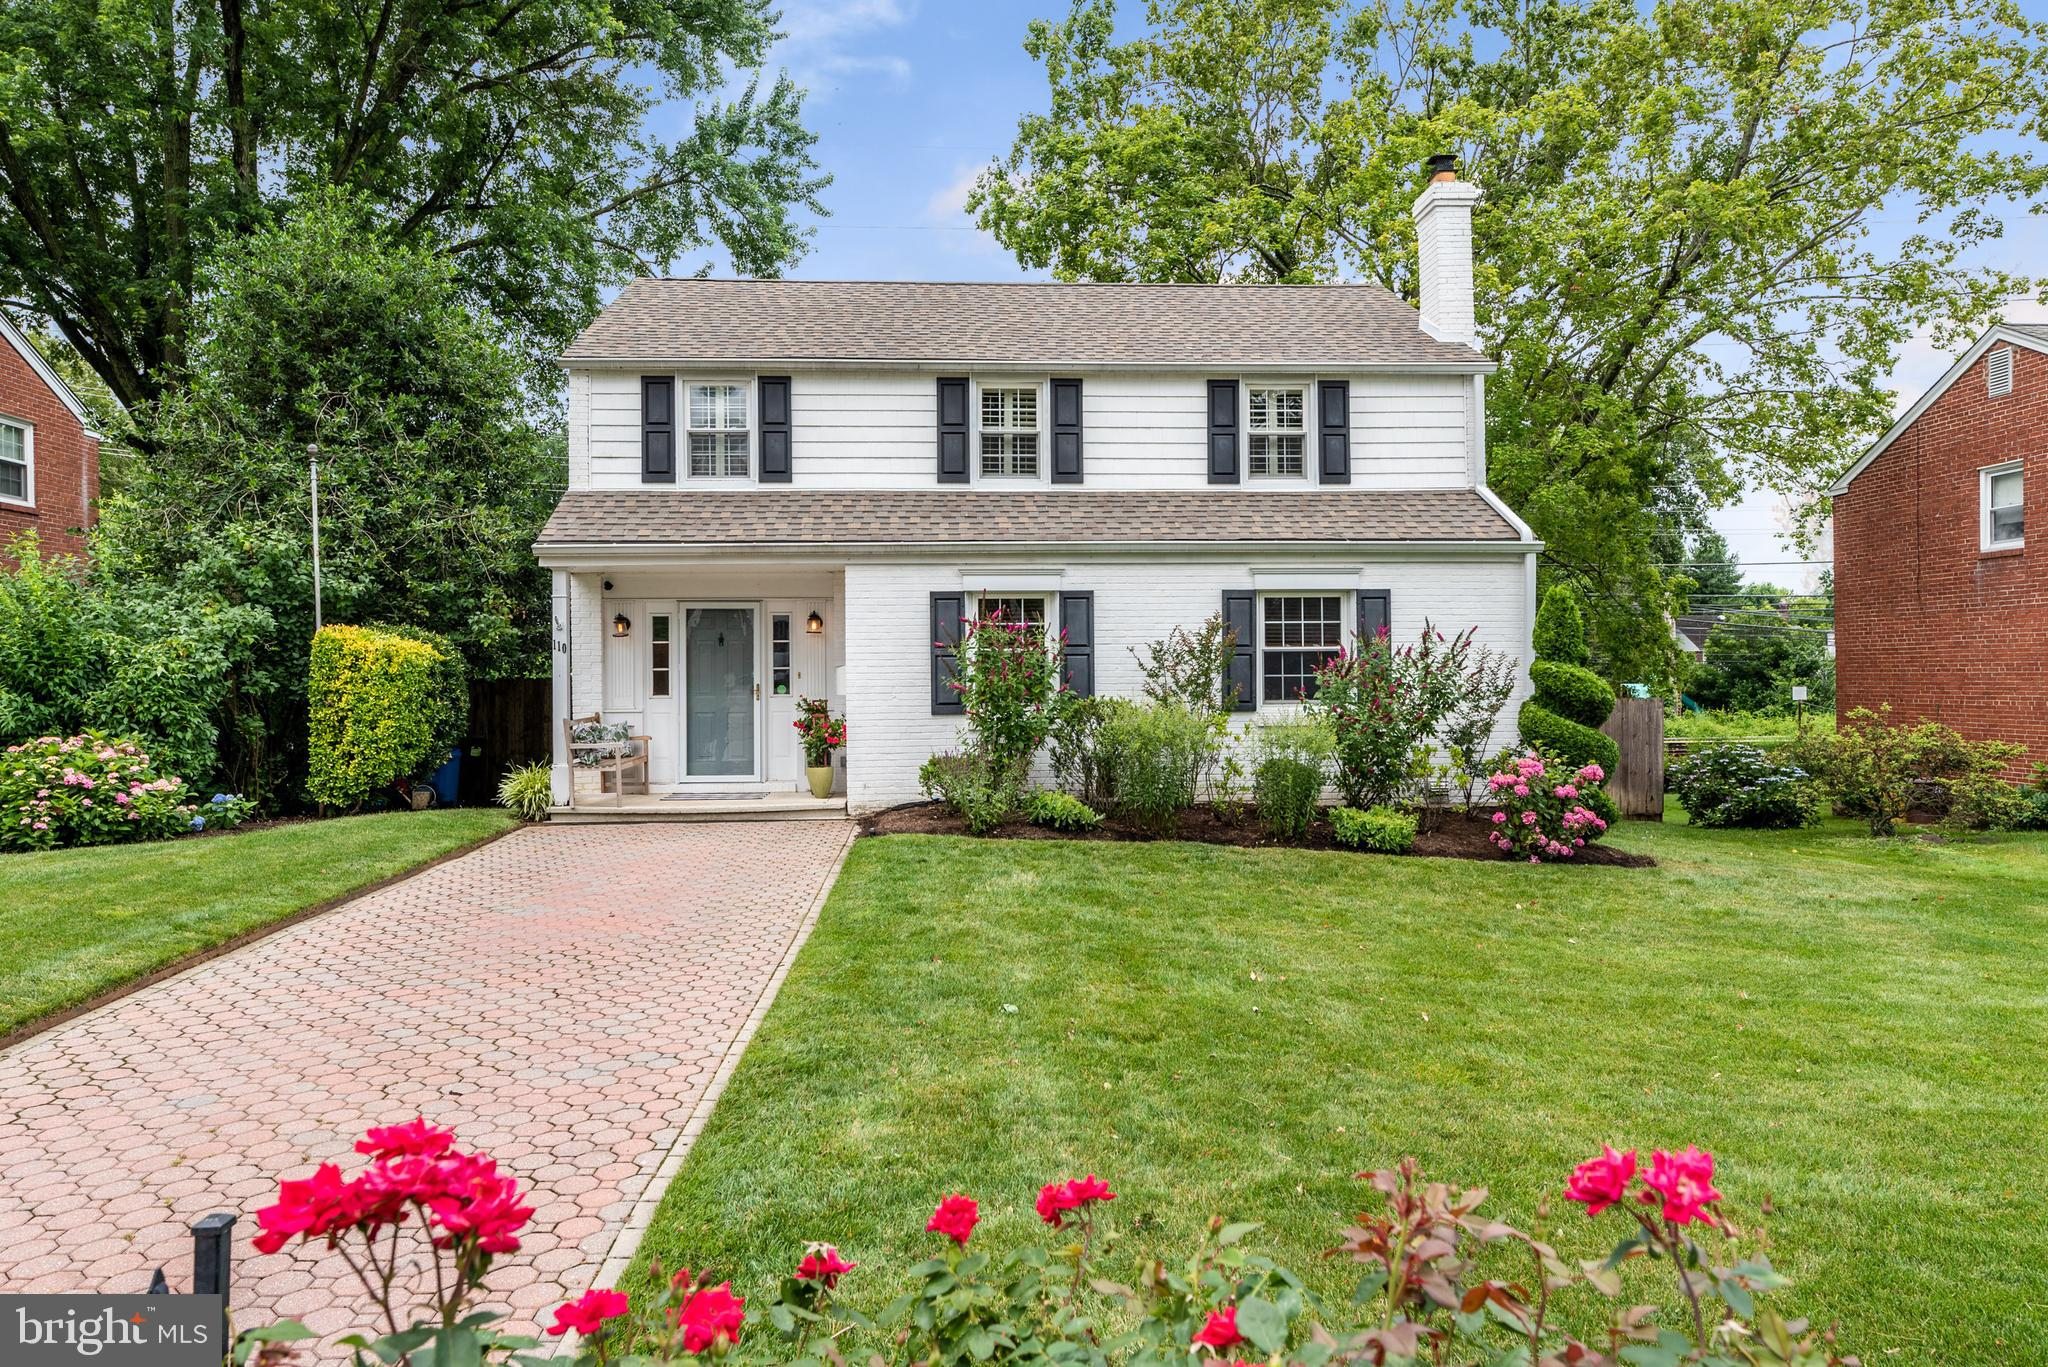 Welcome home to this charming and updated 3 bedroom, 2.5 bath home in the Old Oaks neighborhood of Bryn Mawr. The mature landscaping and paver driveway make this home a total showstopper. Enter the front door to be greeted by tile floors and a beautiful built-in cubby area for storage. A spacious living room sits to the right of the front door and offers a gas fireplace, hardwood floors, abundant natural light, and a built-in bookshelf. The living room is open to the dining room and kitchen area. The kitchen which was recently renovated has blue and white cabinets, granite countertops, a subway tile backsplash, stainless steel appliances, ample counter space, and counter seating. First floor laundry and a powder room complete the first floor. The second floor offers 3 spacious bedrooms and 2 full bathrooms. The primary bedroom has carpet, plantation shutters, and 3 closets including a custom walk-in closet. The secondary bedroom has an abundance of natural light, plantation shutters and an updated ensuite bathroom. A spacious third bedroom and tiled hall bath with a shower/tub combo complete this floor. The partially finished basement is the perfect space for a playroom or home office, you will also find an additional unfinished storage area in the basement. A two tier deck will make entertaining breeze, there is even an outdoor TV area! The fully fenced backyard has an additional seating area, storage shed and landscaping throughout. 110 Buckingham Drive is in the award winning Radnor School District and within walking distance of the R5 Septa train and the R100 Speed Line to make commuting to Philadelphia extremely convenient. Also, within walking distance is to the recently renovated Clem Macrone Park. You can easily access the popular shopping and dining districts of Bryn Mawr, Villanova and Wayne as well or hop on the Blue Route in Villanova. The Old Oaks Neighborhood is truly a gem - block parties and movie nights are just a taste of what this amazing neighbor